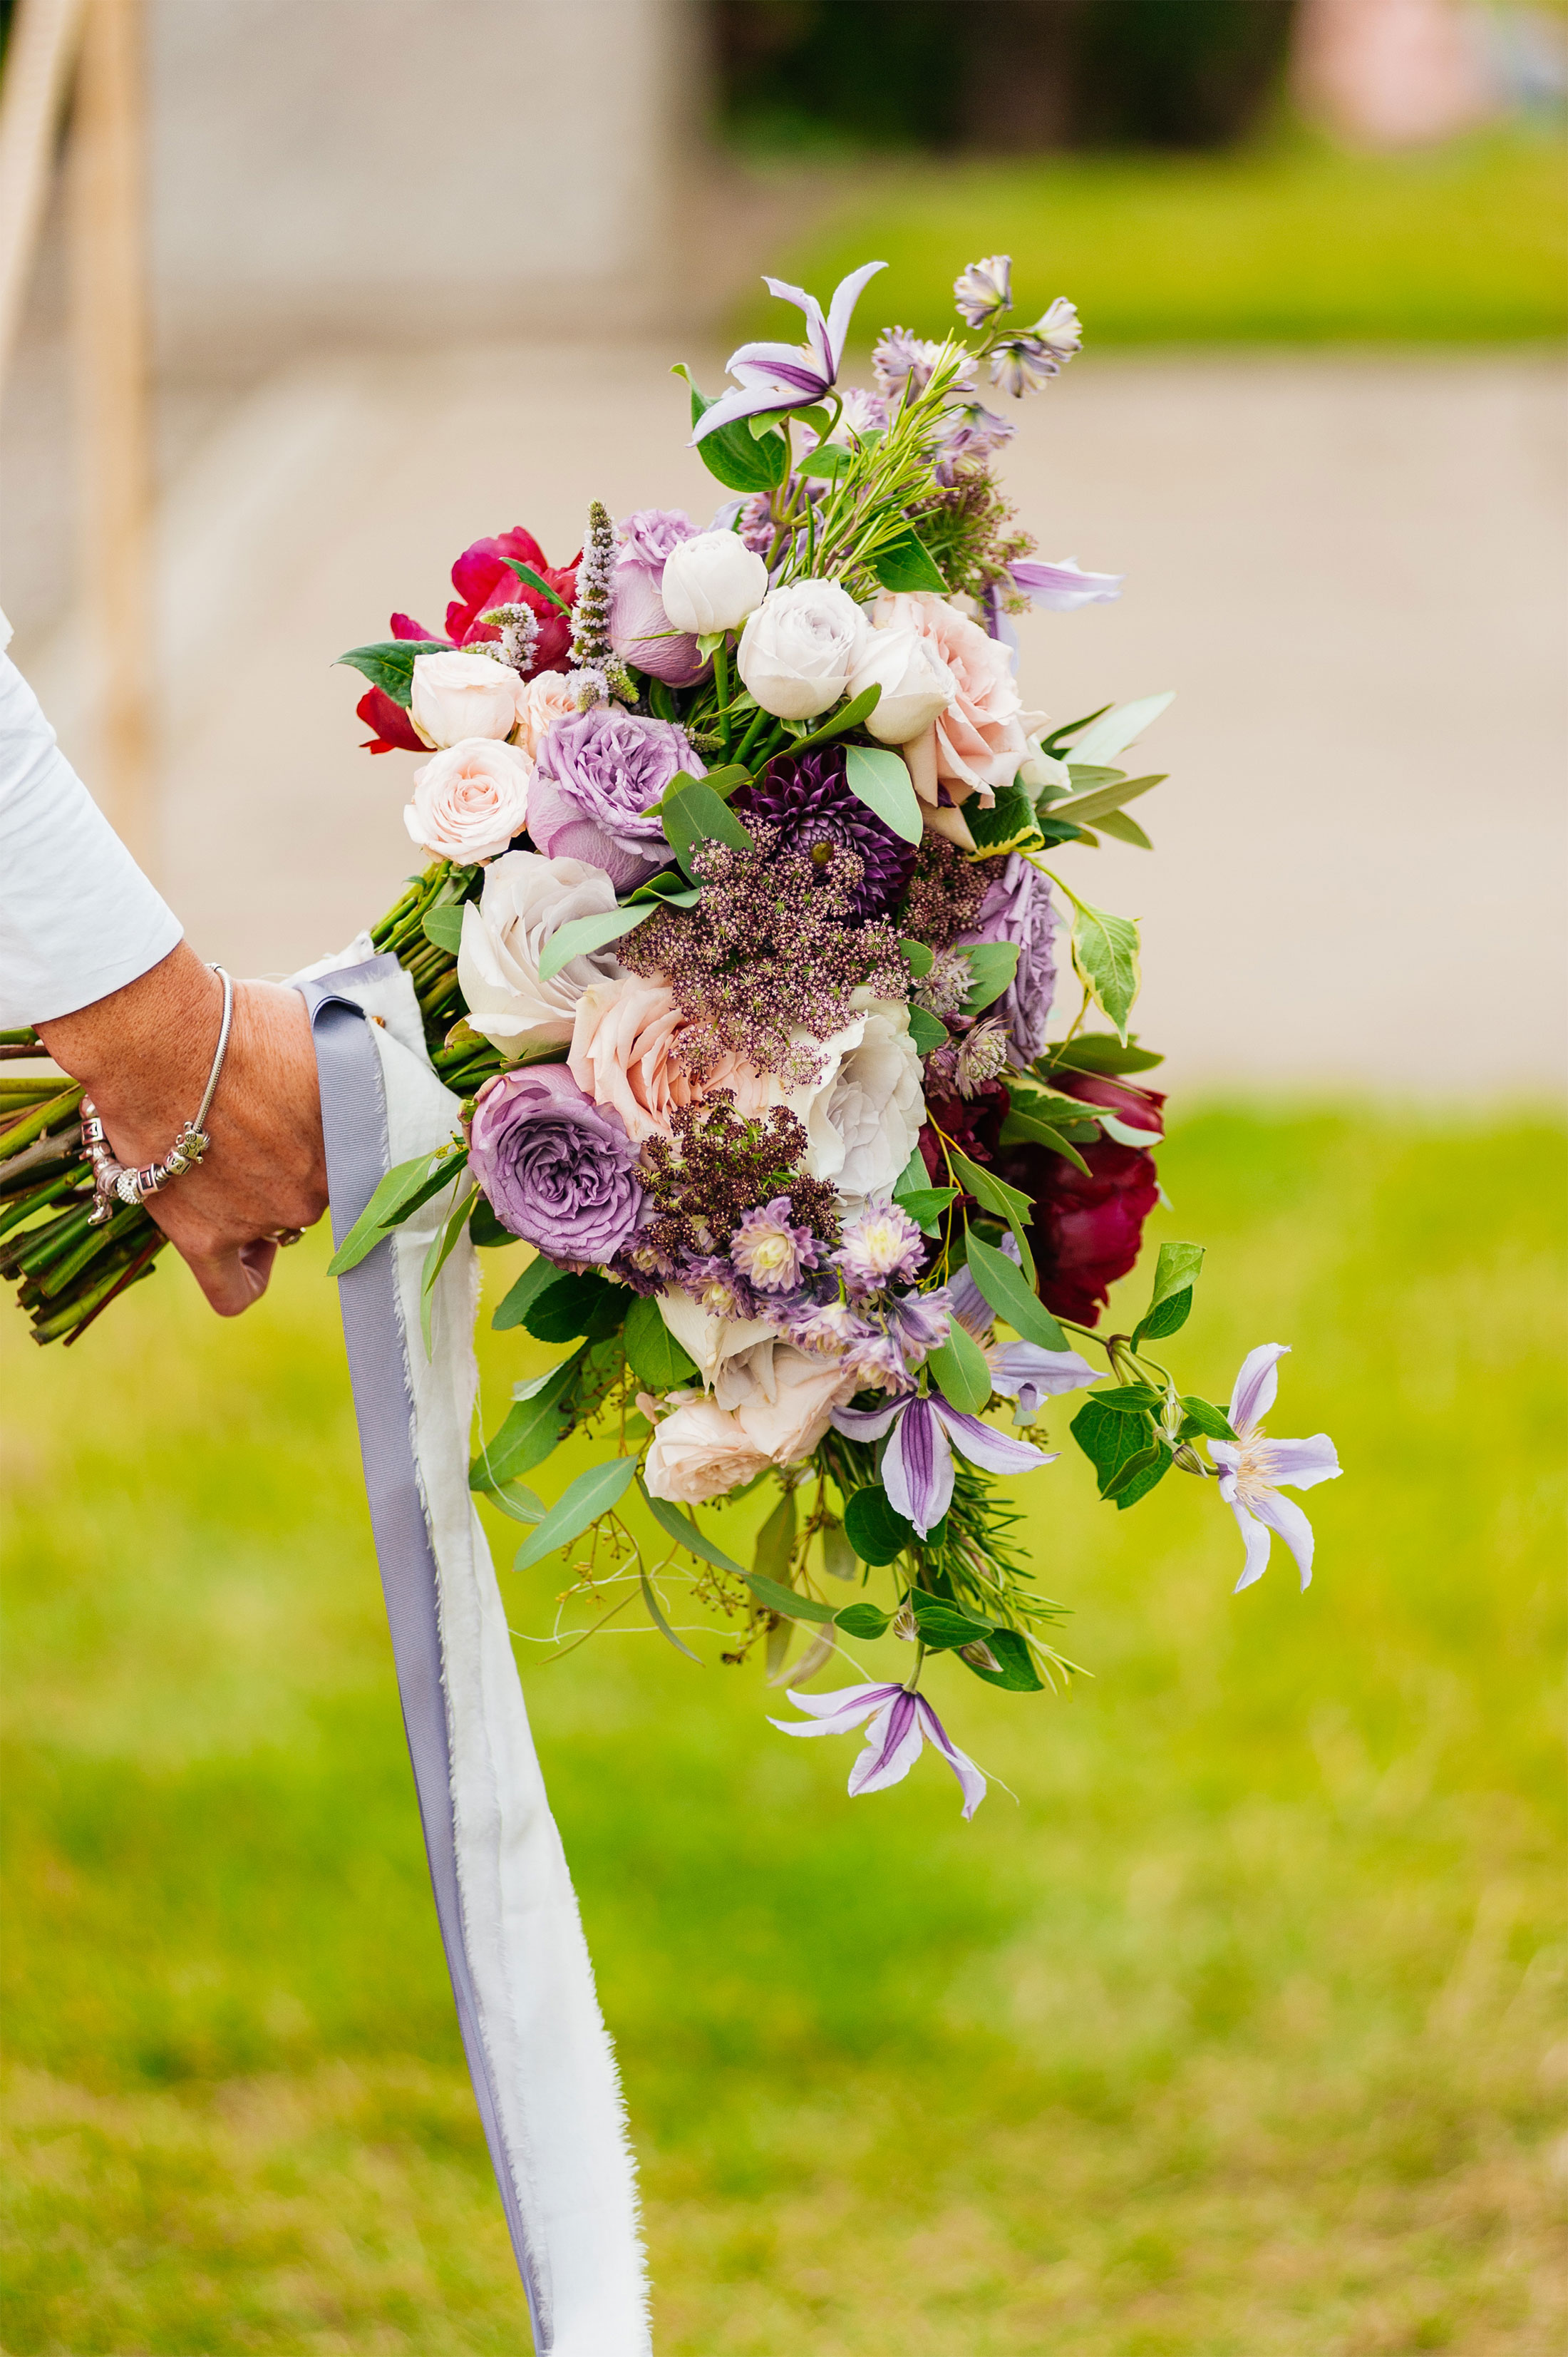 Kilruddery House Wedding Flowers0579.jpg